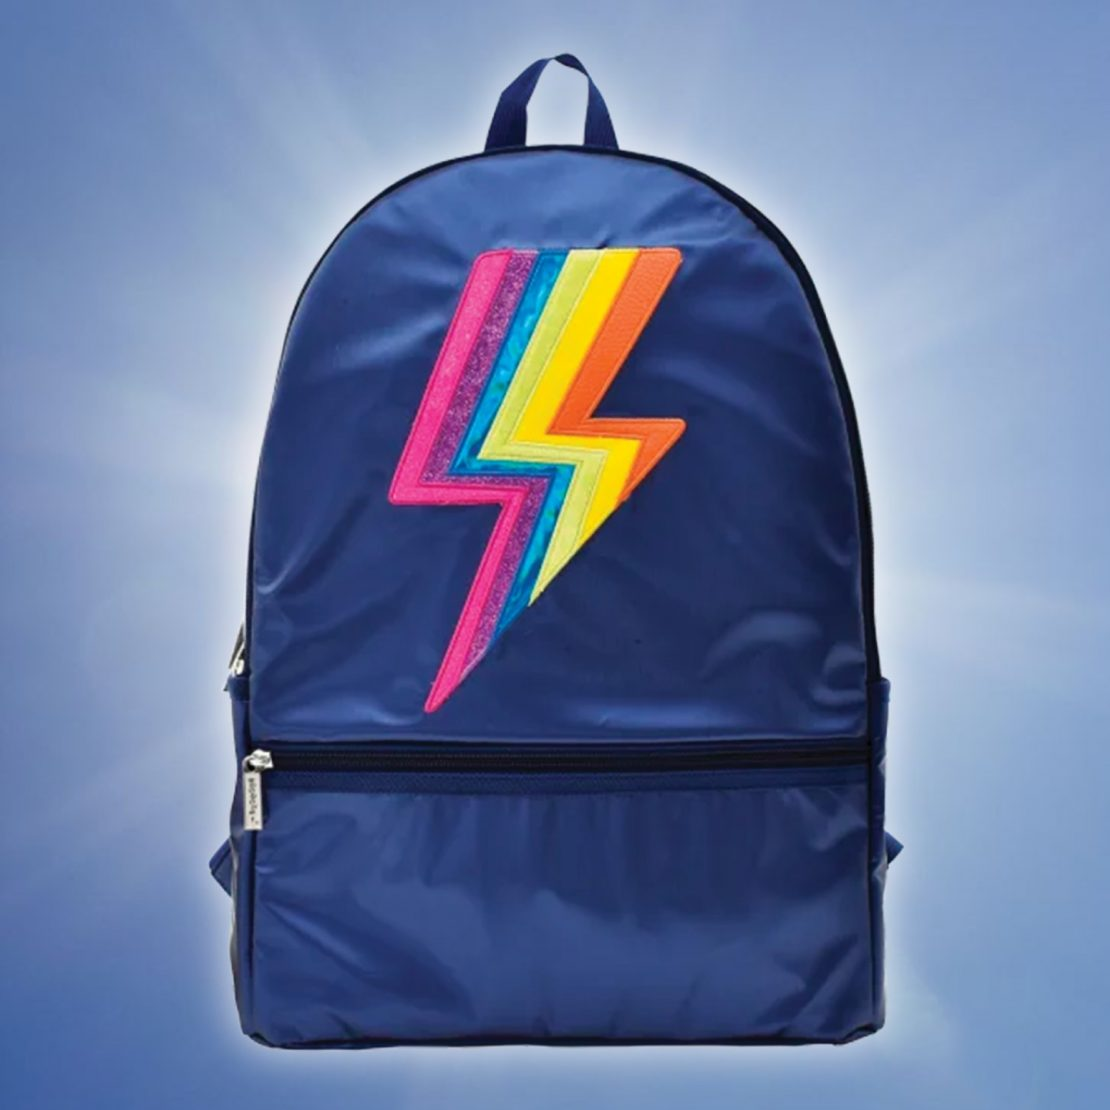 Backpacks and Back To School Gear